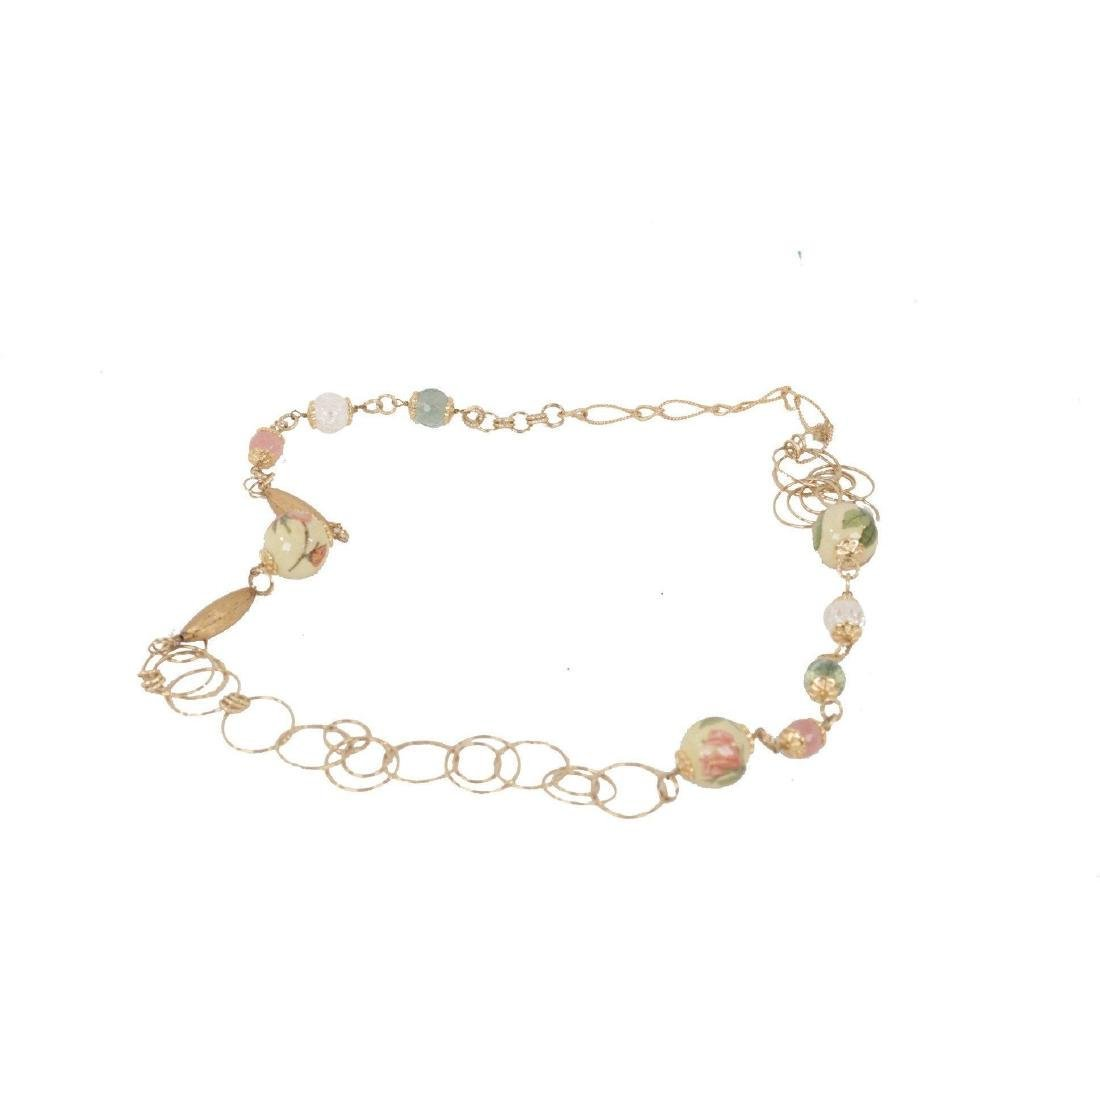 Vintage Gold Metal Chain Necklace W/ Decoupaged Beads